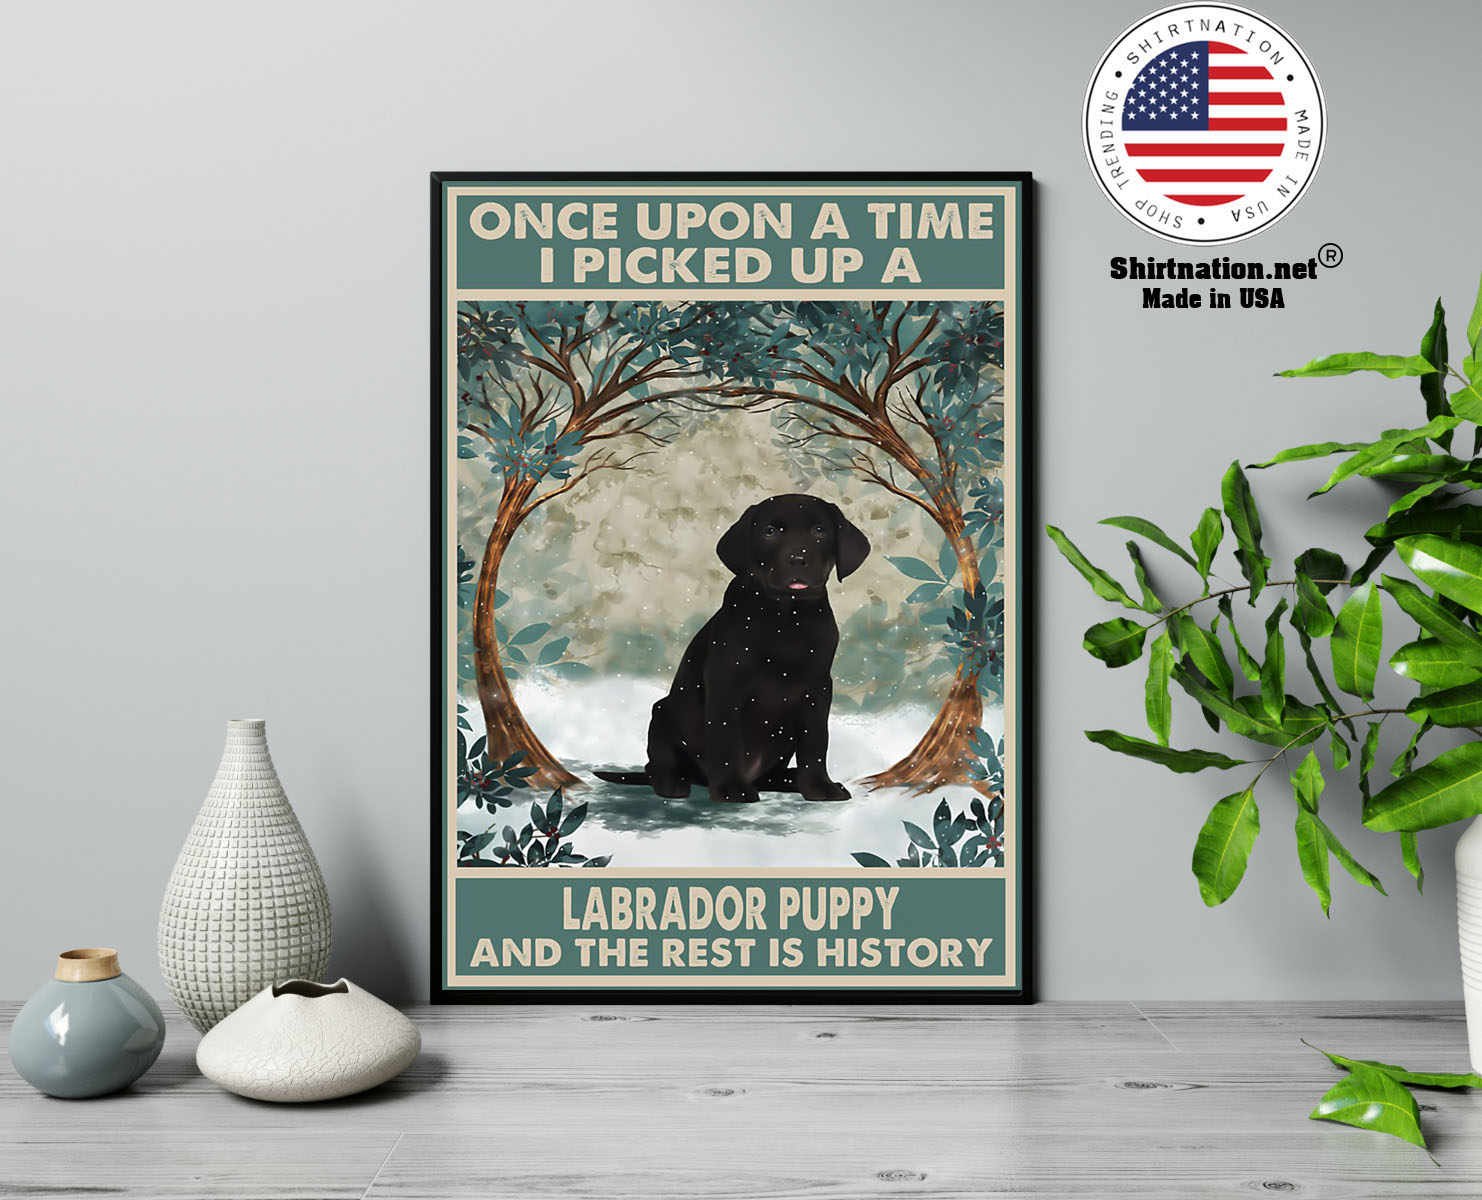 Once upon a time I picked up a labrador puppy and the rest is history poster 13